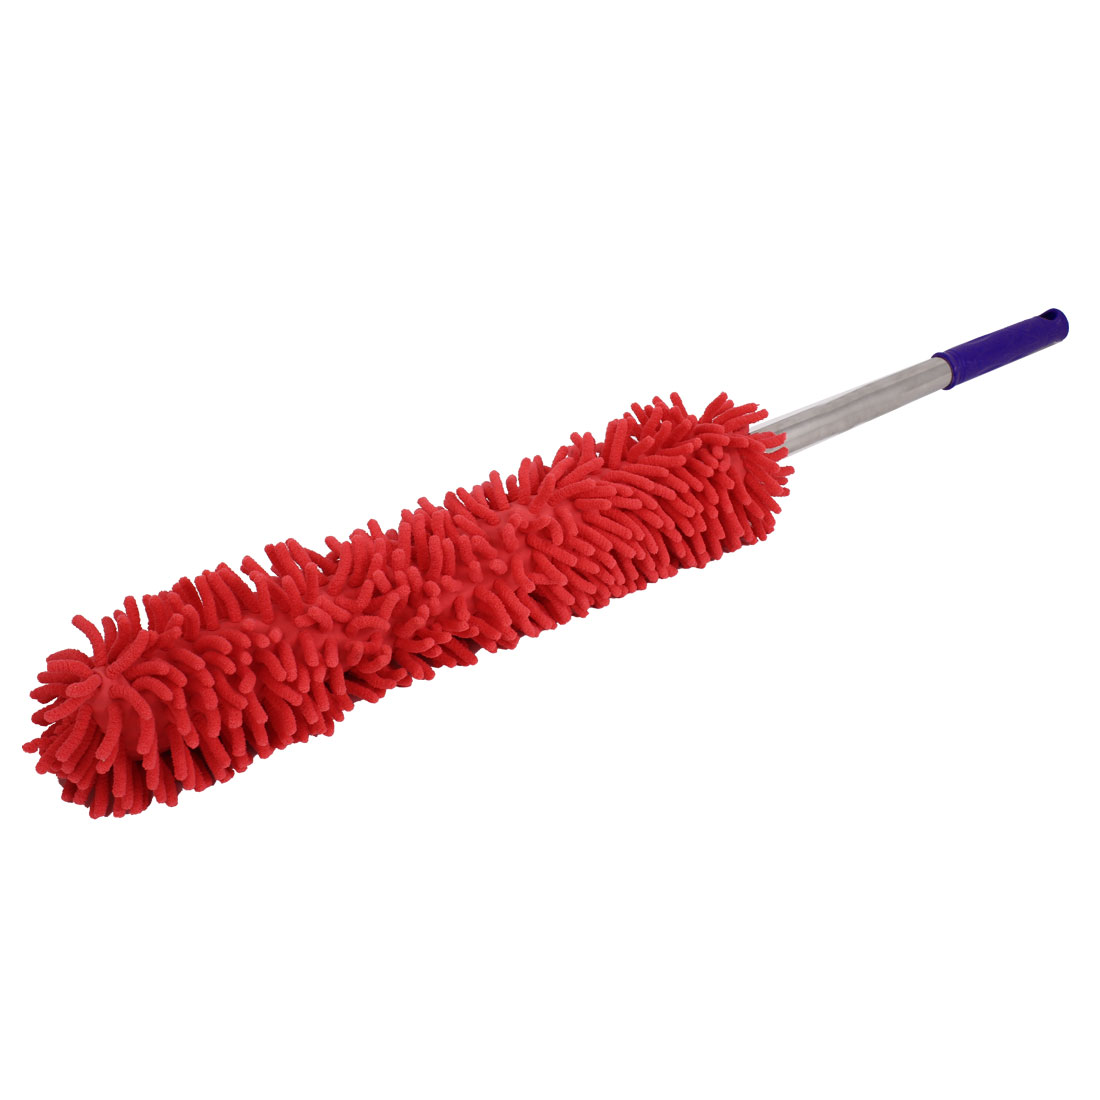 Nonslip Plastic Hand Grip Microfiber Car Dirt Duster Waxing Brush Red